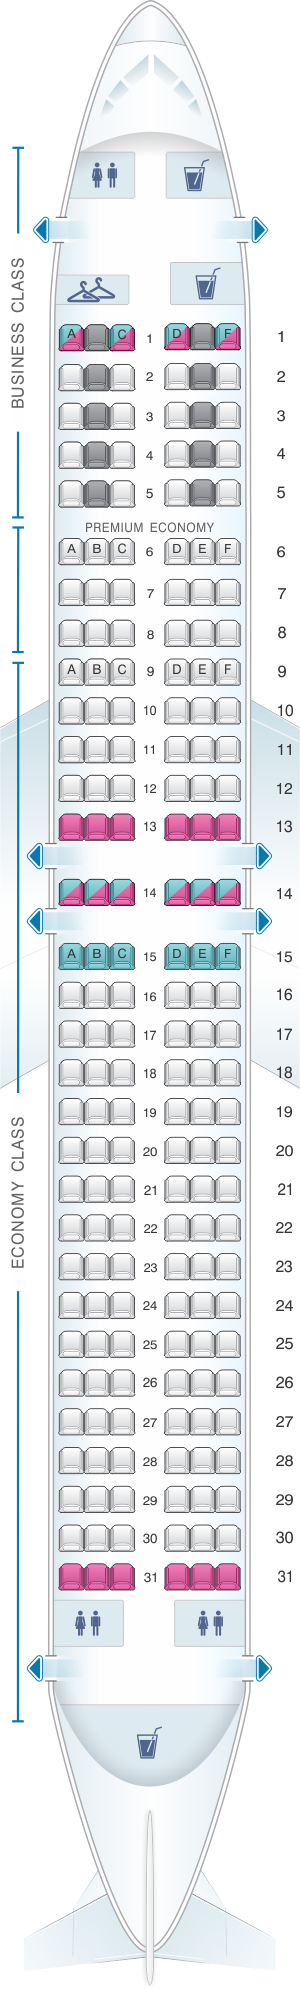 Seat map for LOT Polish Airlines Boeing B737 MAX 8